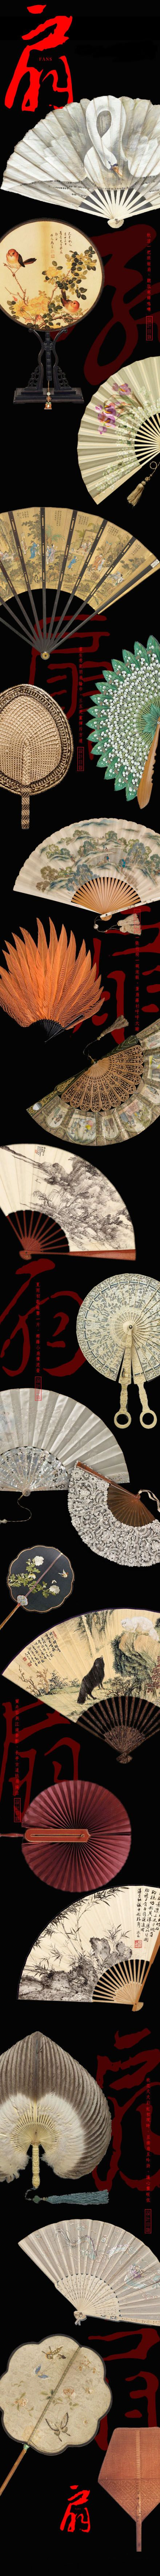 My grandmother had so many of these Chinese Fans...from as far as I could remember, she's always had one